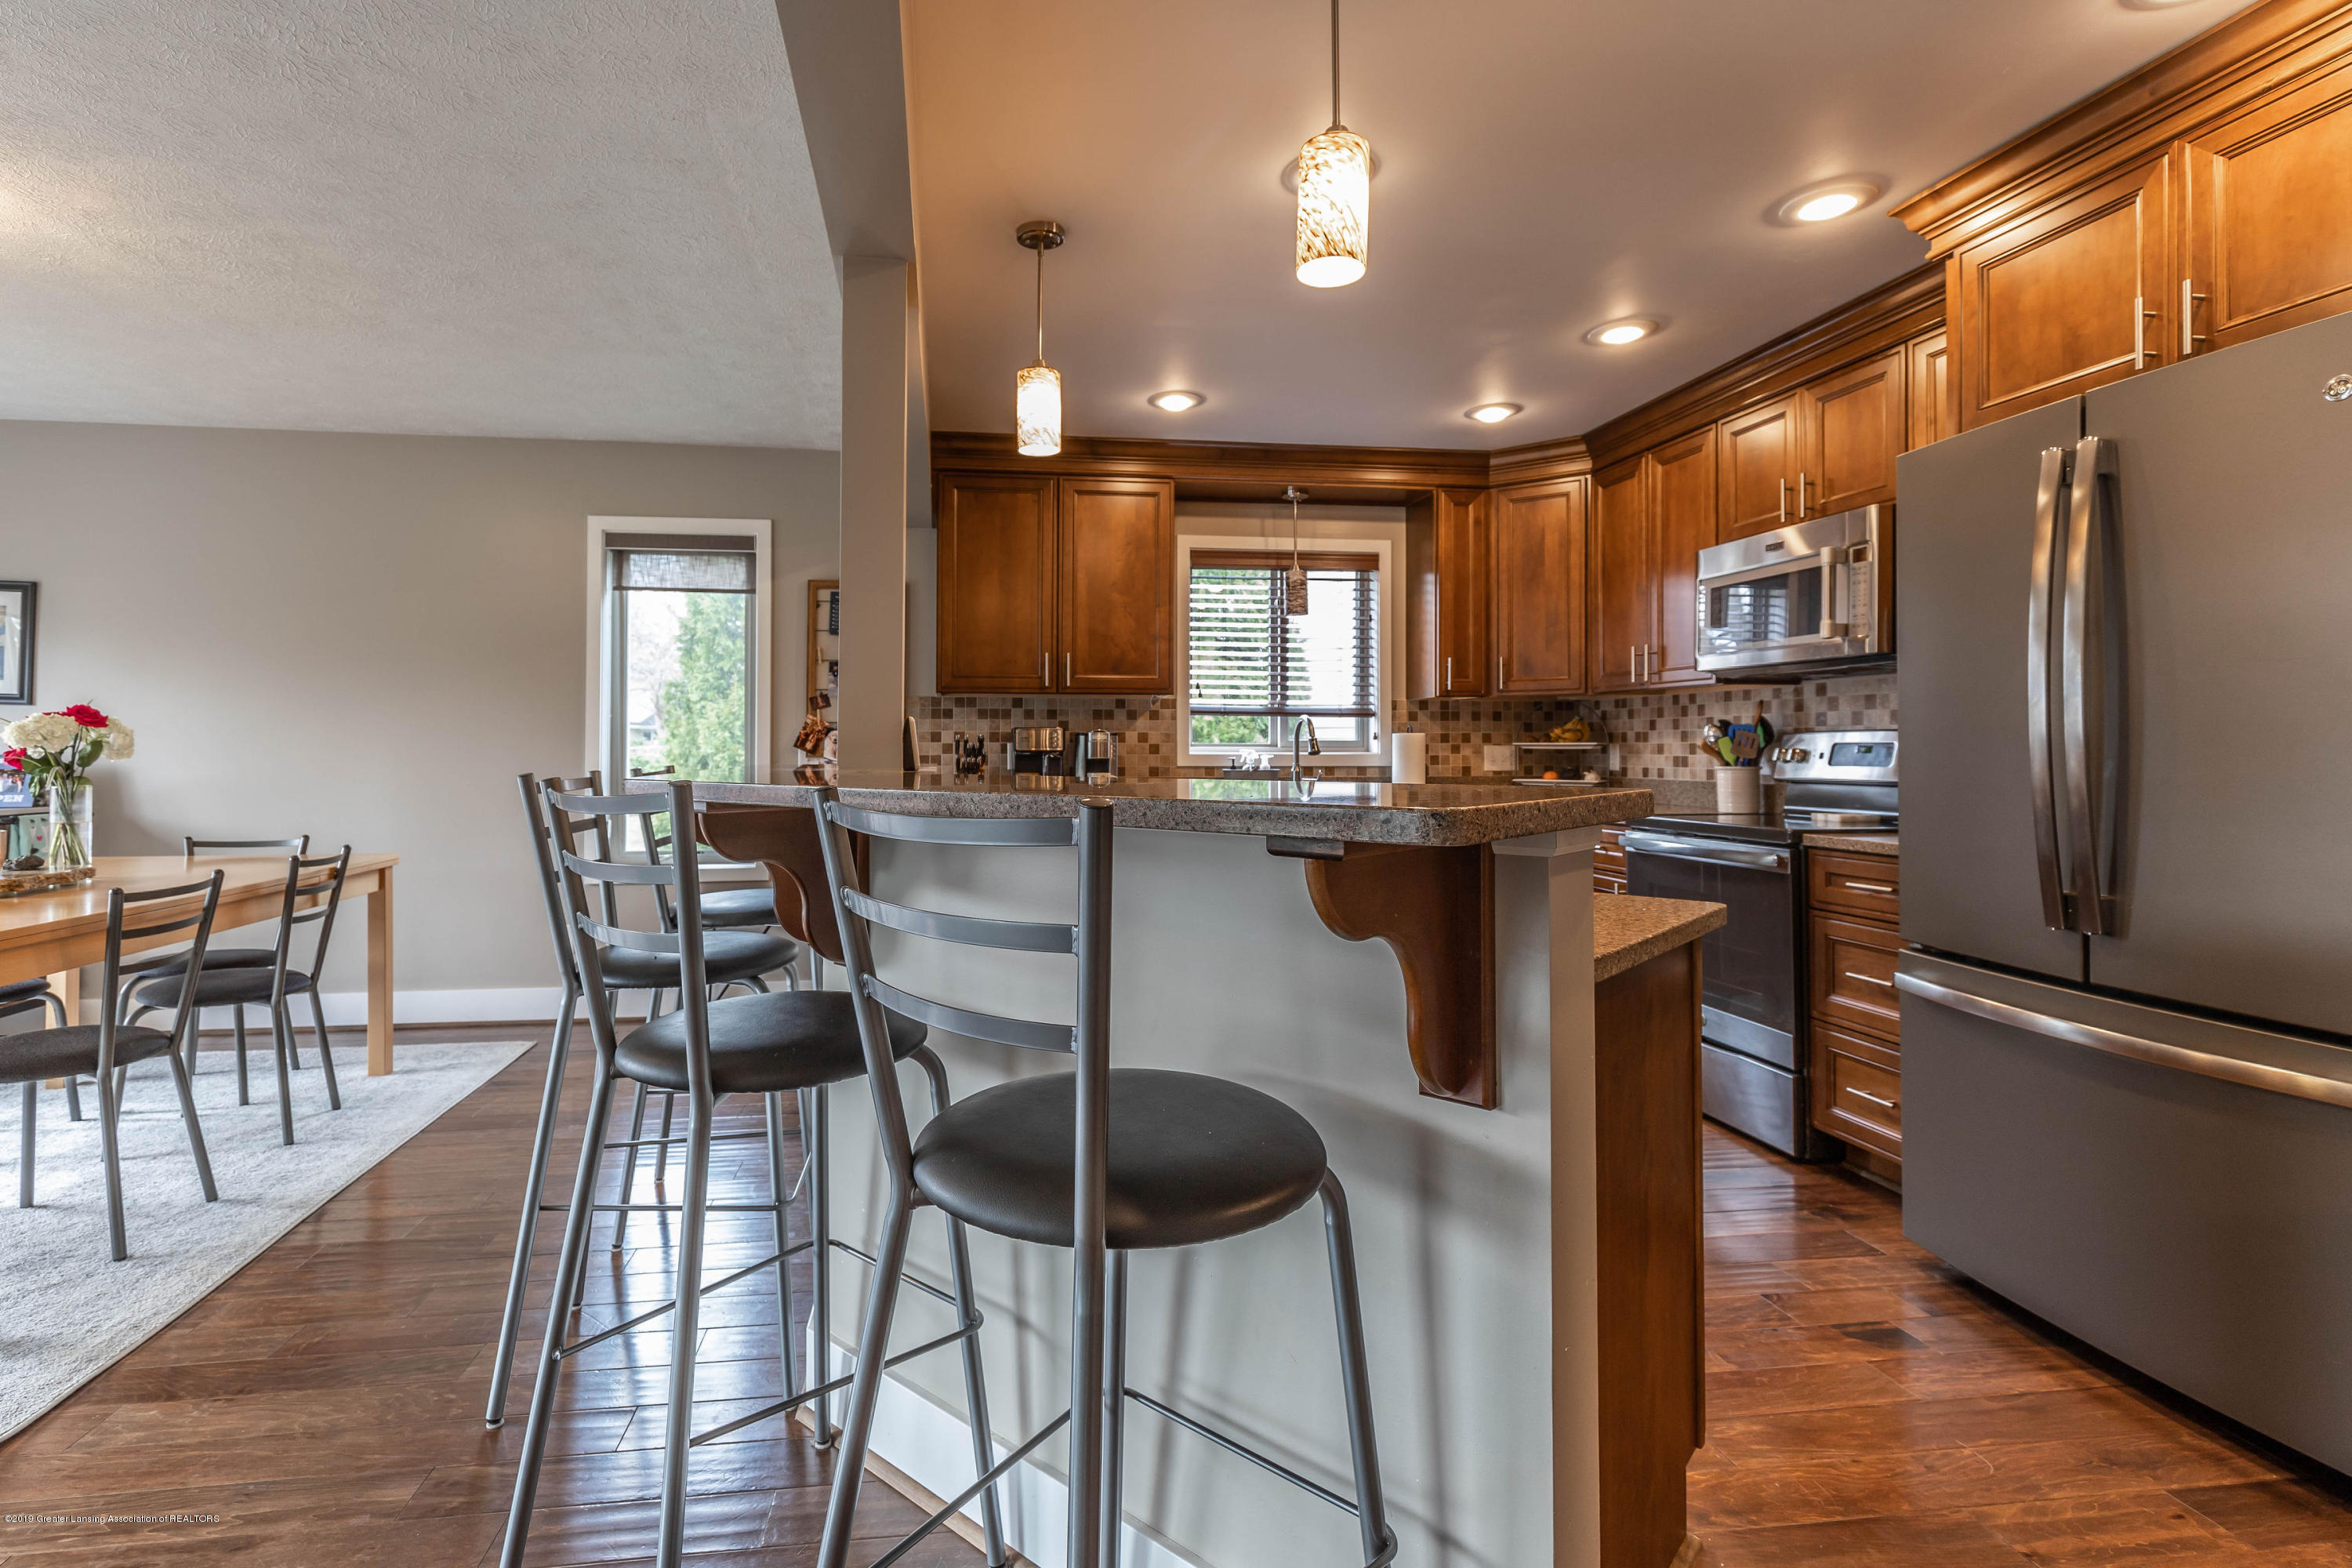 1701 Wyngarden Ln - Kitchen - 28